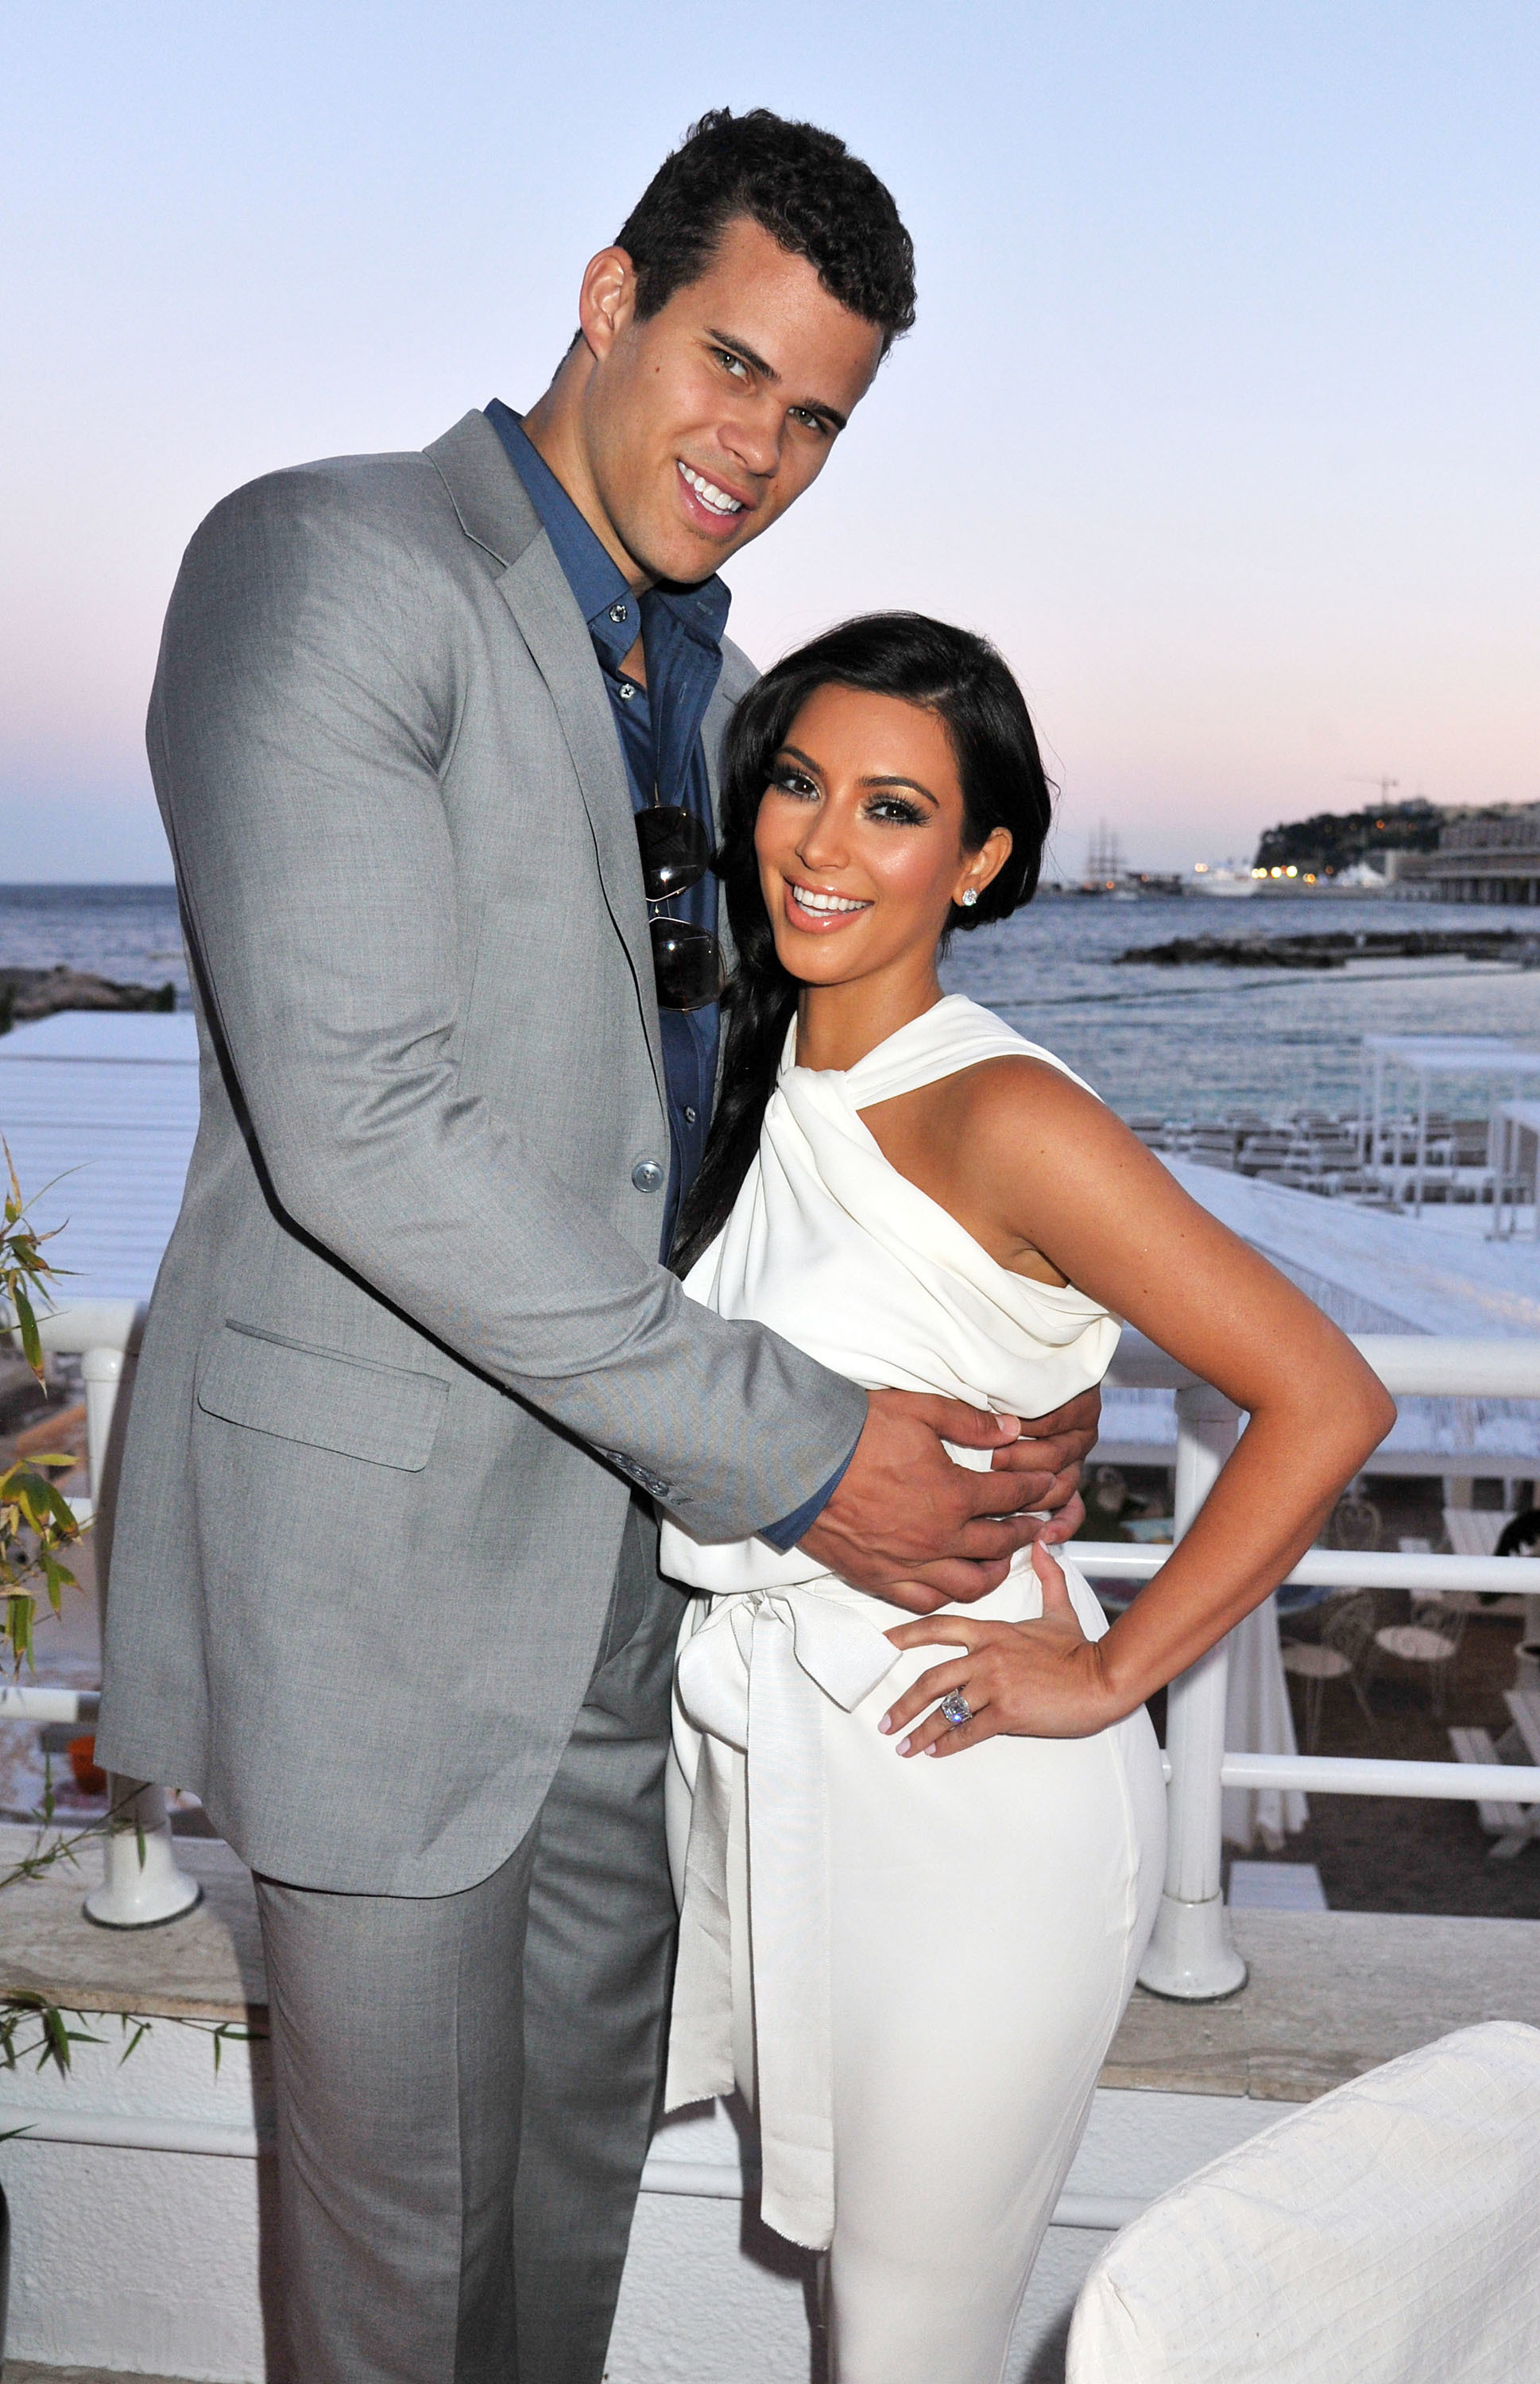 Kim Kardashian and Kris Humphries appear at the Amber Lounge Fashion Show and Auction at Le Meridien Beach Plaza in Monaco on May 28, 2011.